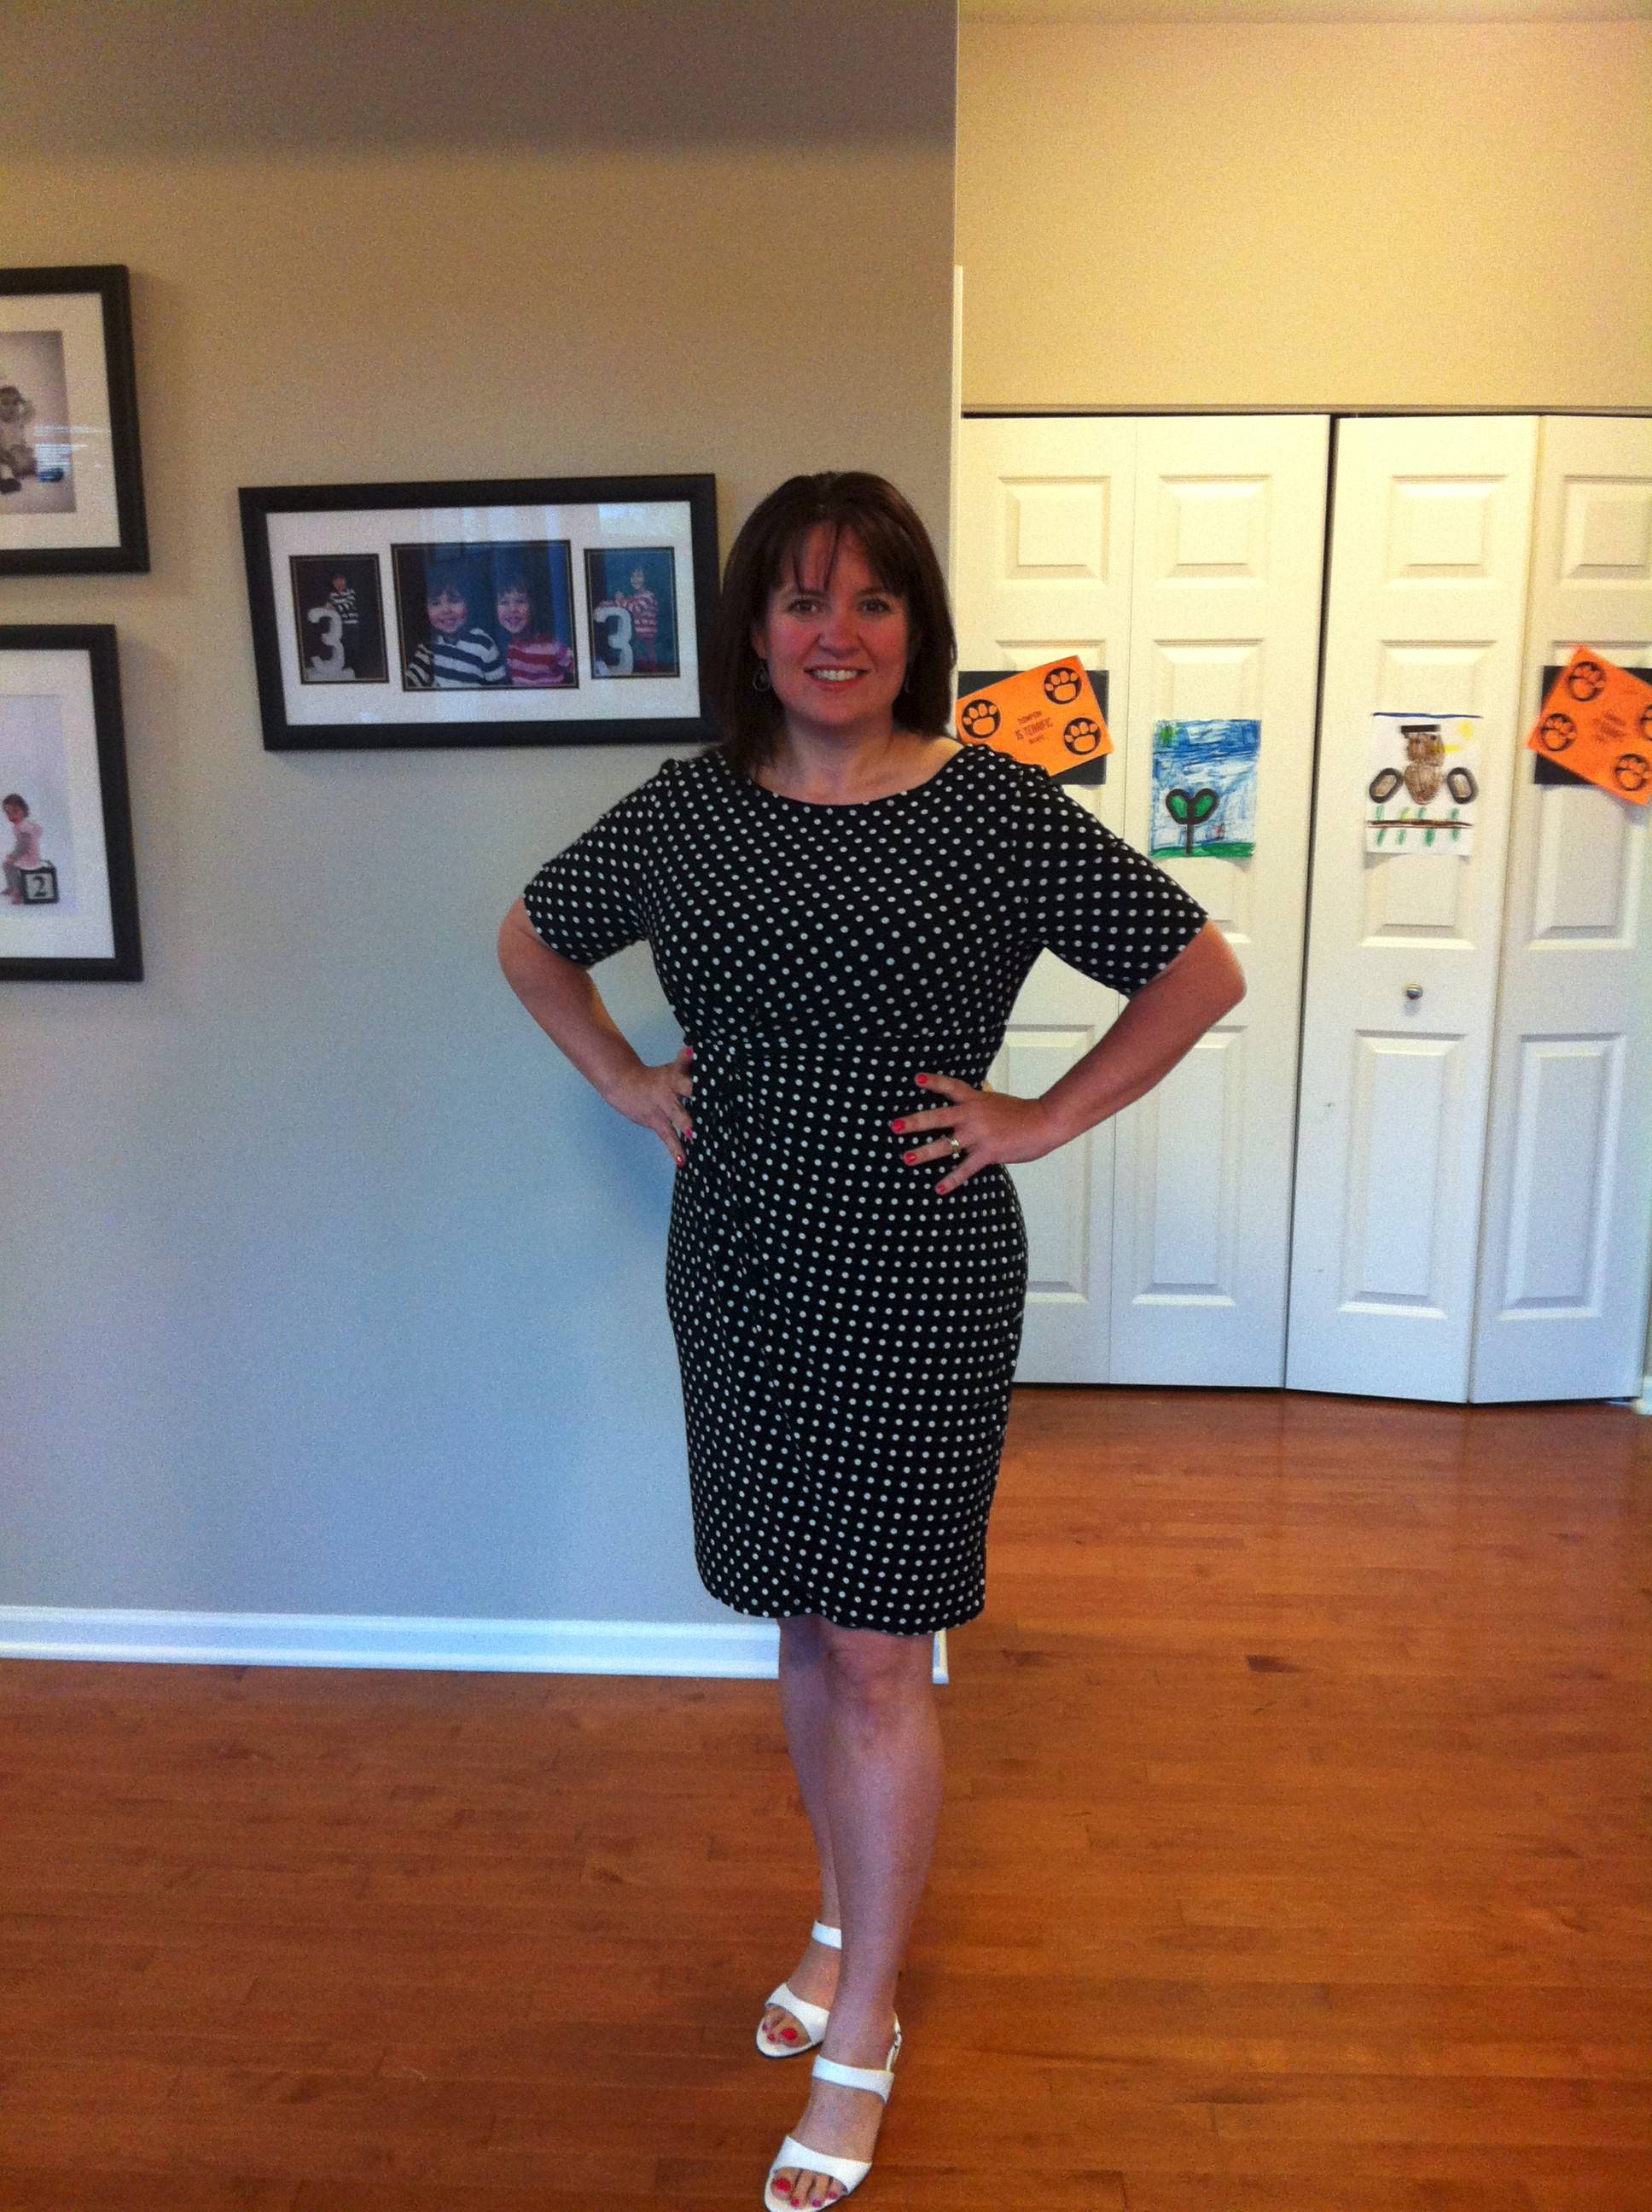 Submitted photoThis is how Lake Villa resident Erin Pron looks today after losing 148 pounds over the last two years.